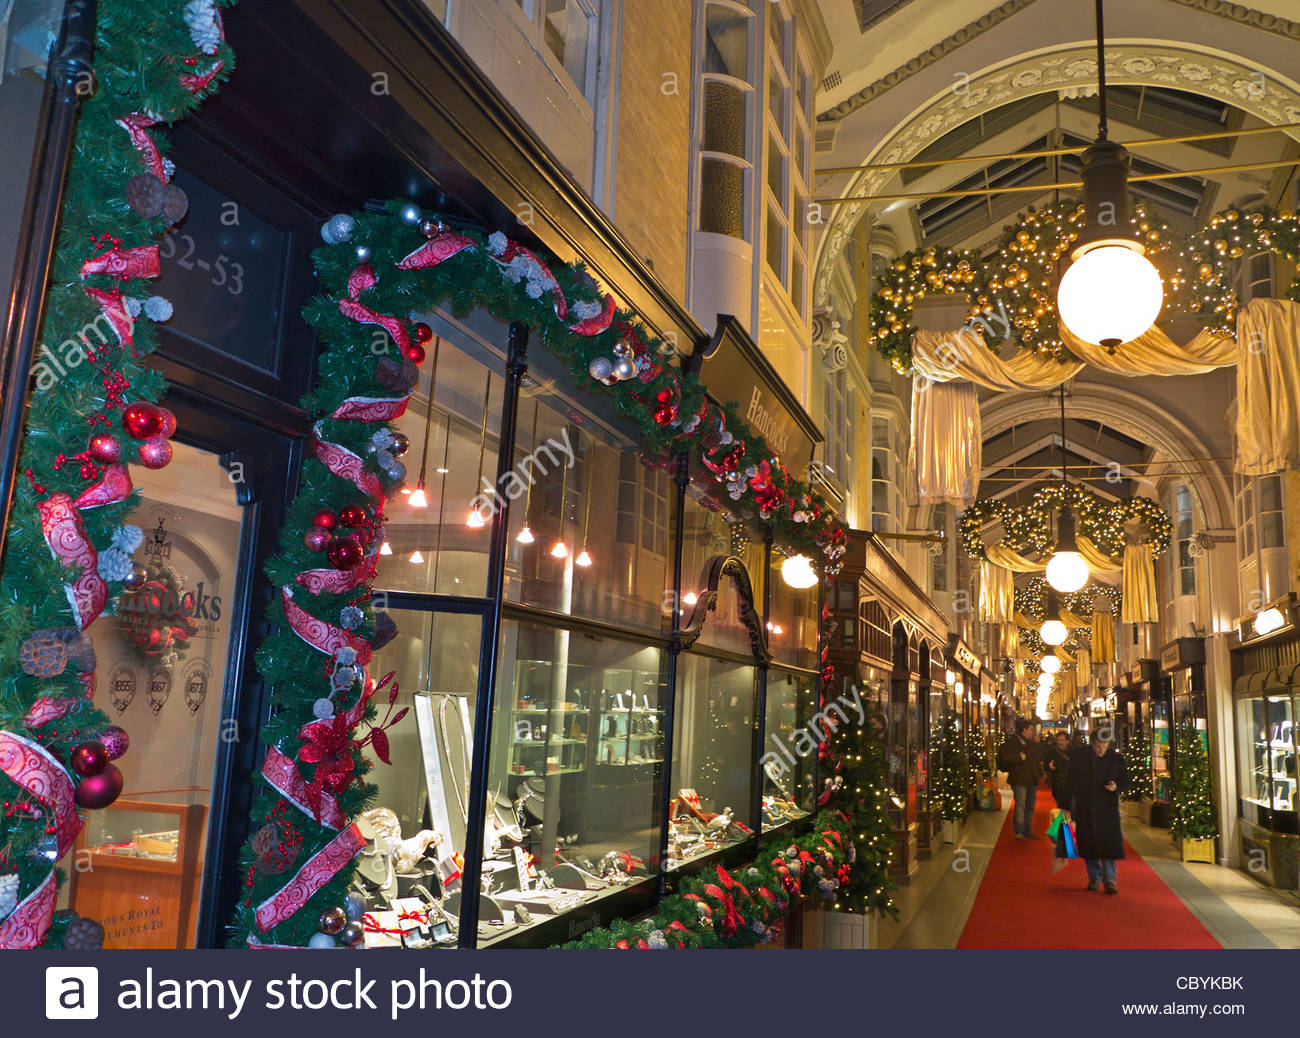 Burlington Arcade in Piccadilly with traditional Christmas decorations and shoppers London UK - Stock Image